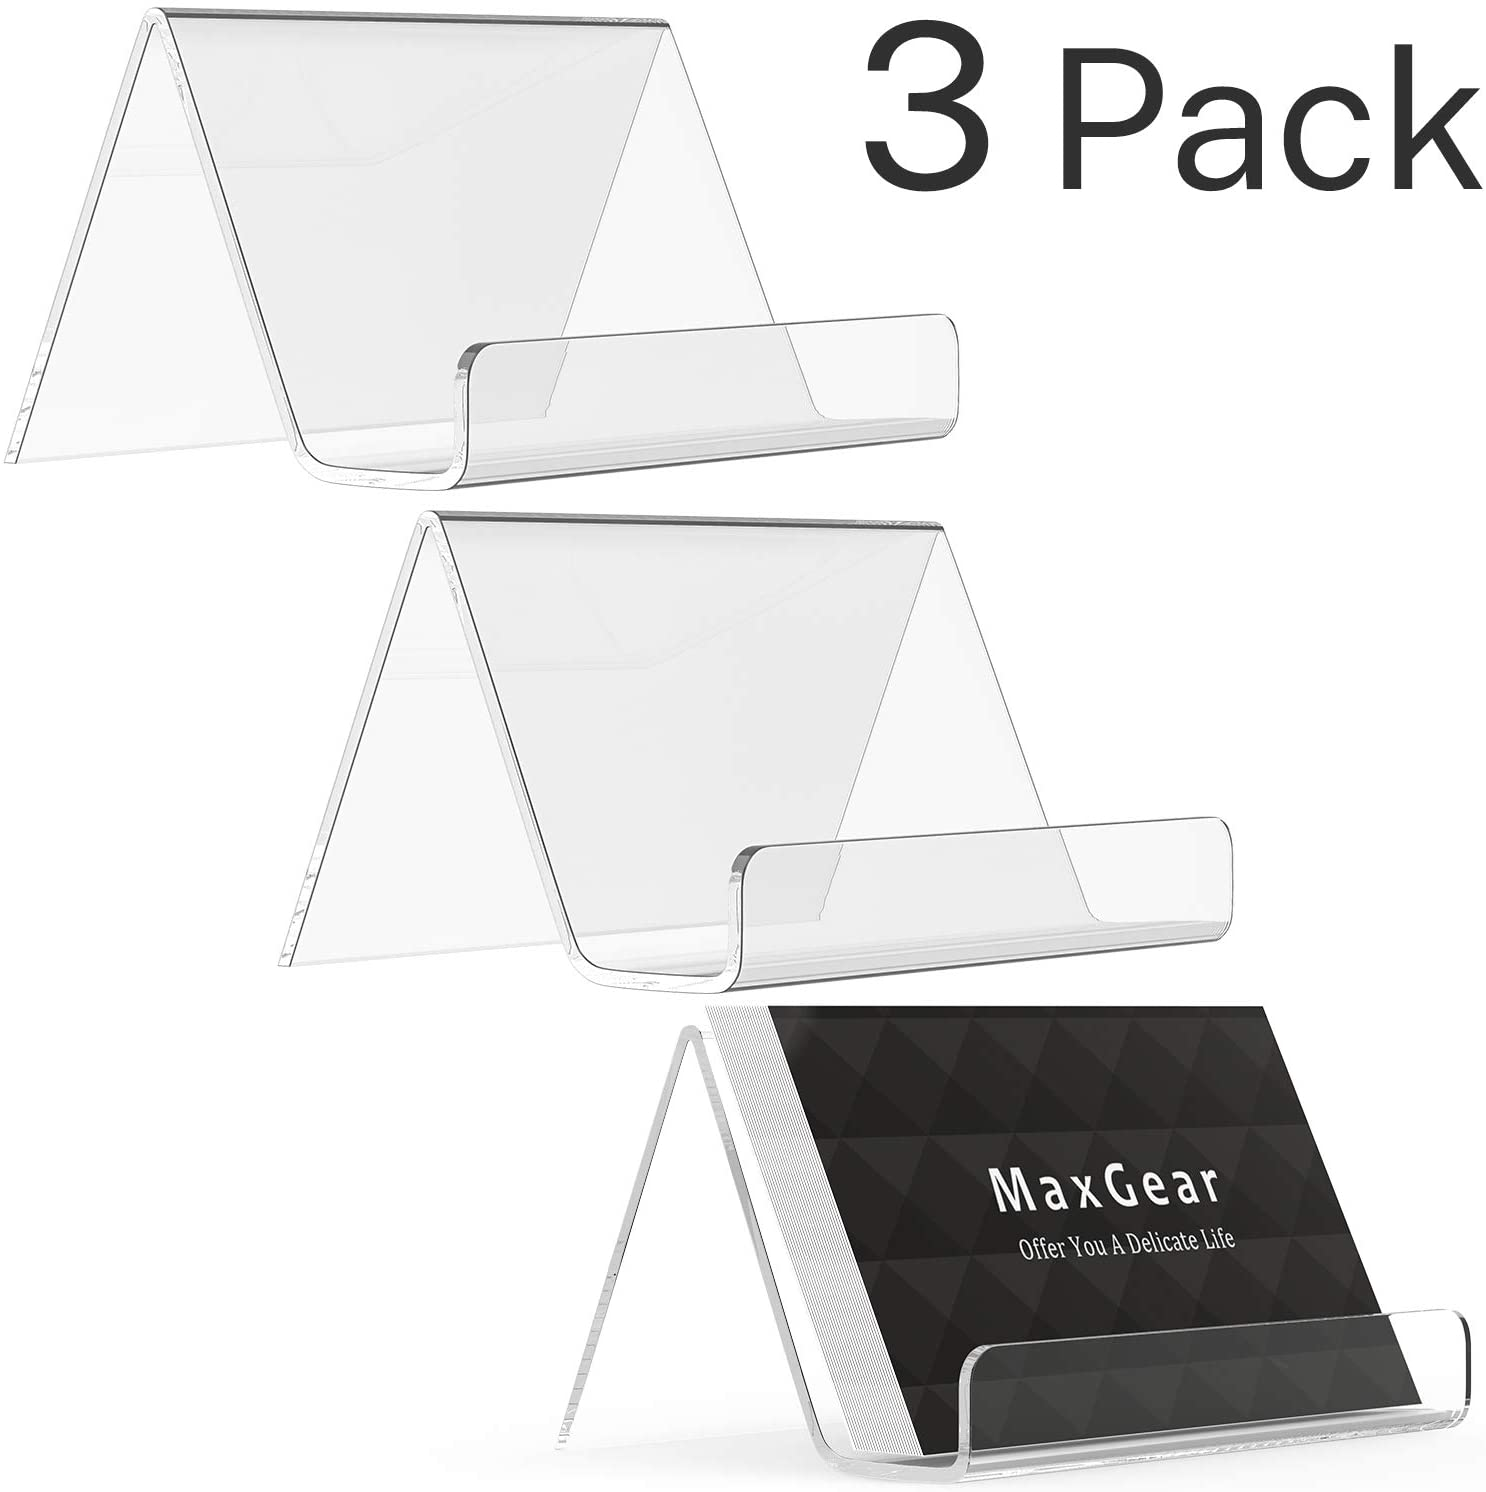 MaxGear Business Card Holder for Desk Acrylic Business Card Display Holders Clear Business Cards Holder Stand 3 Pack Desktop Plastic Name Card Organizer, Capacity: 50 Cards